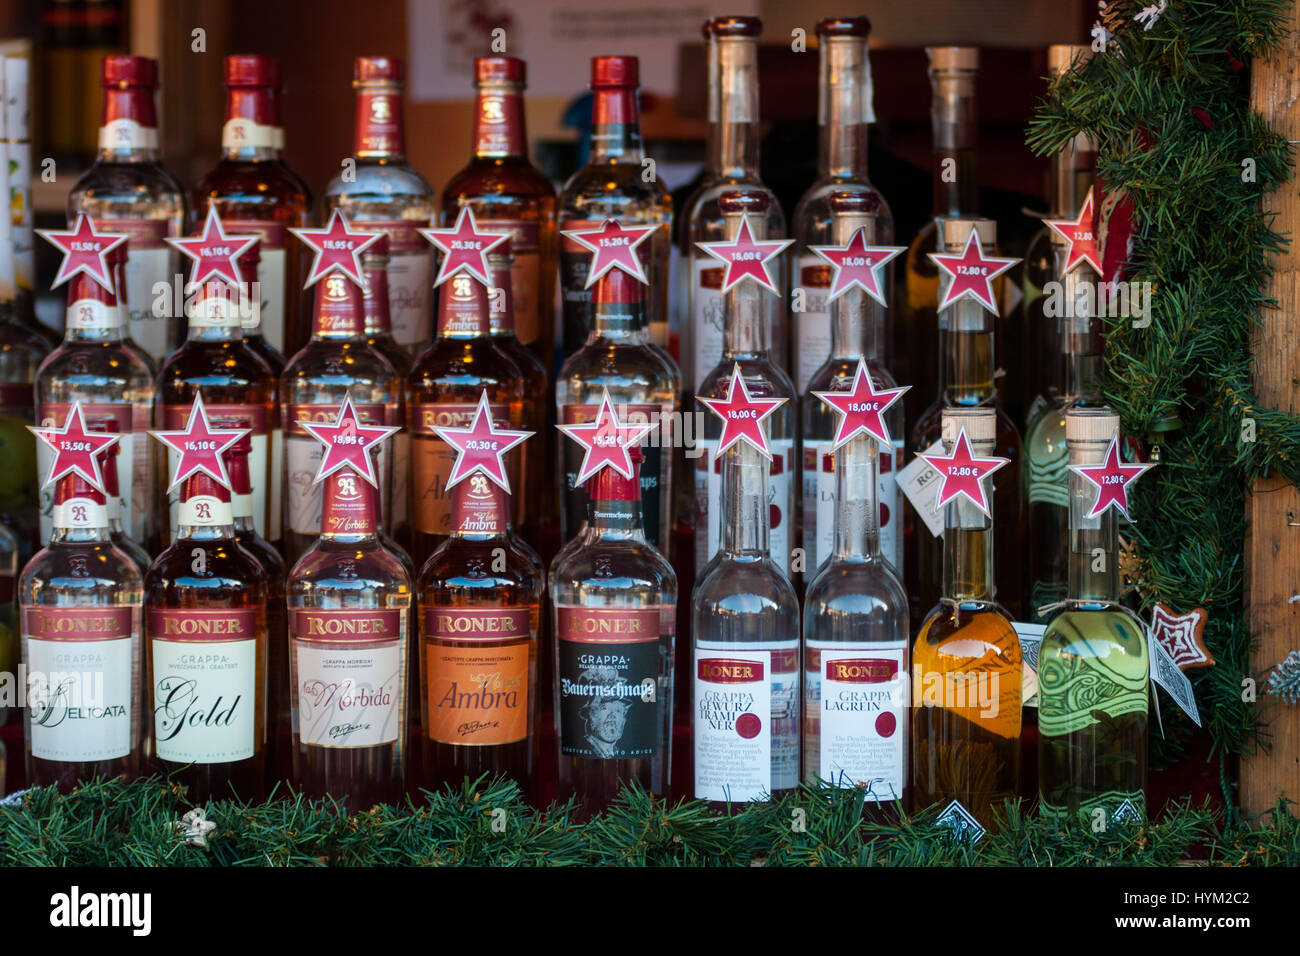 Spirits at the traditional Christmas markets of Bolzano, in Italy. - Stock Image